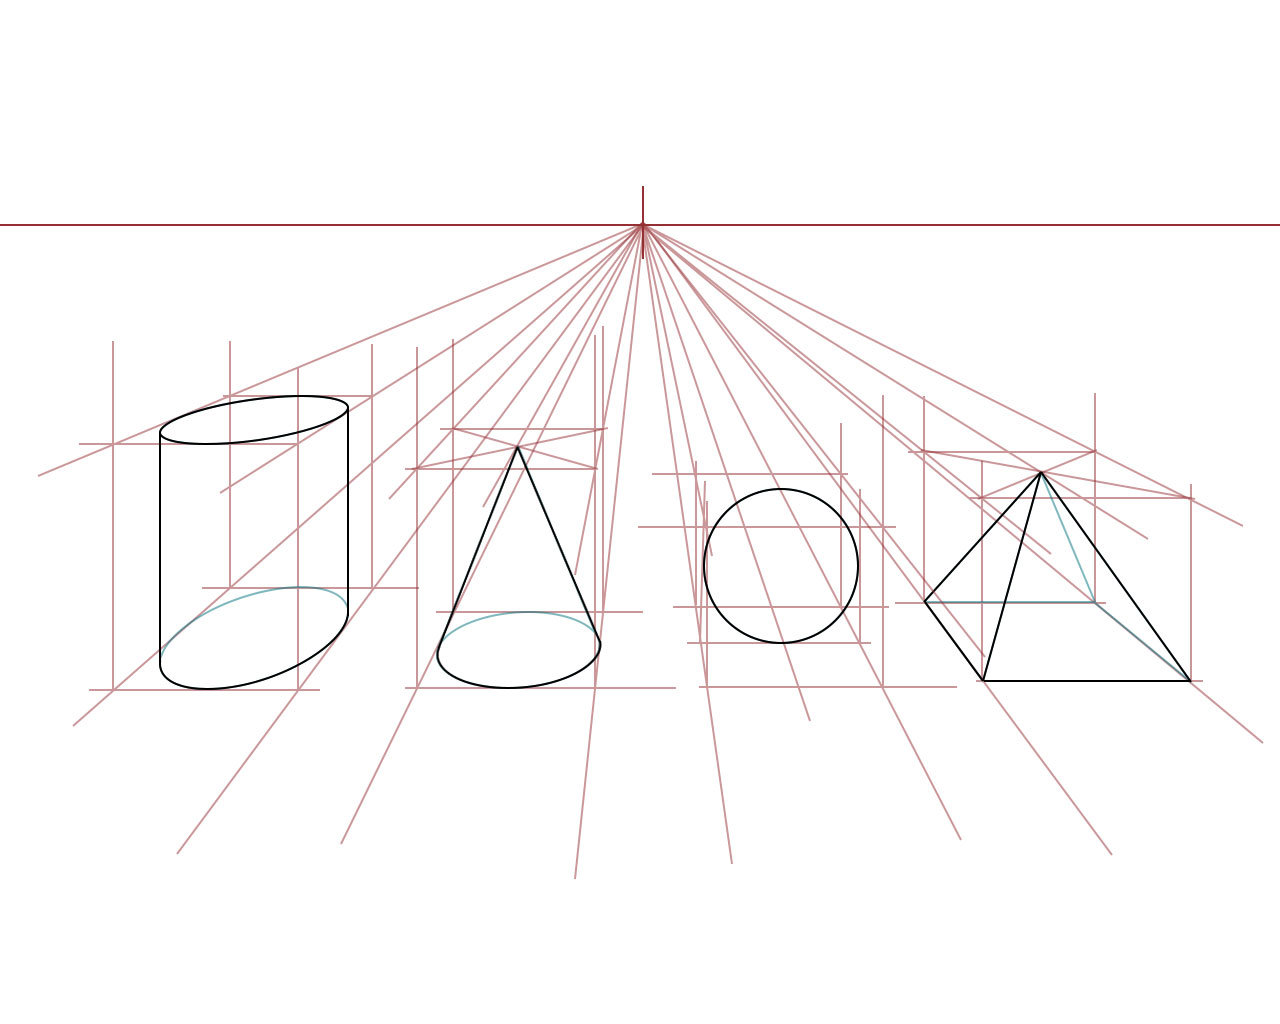 1280x1024 Exercise Drawing A Box In One Point Perspective